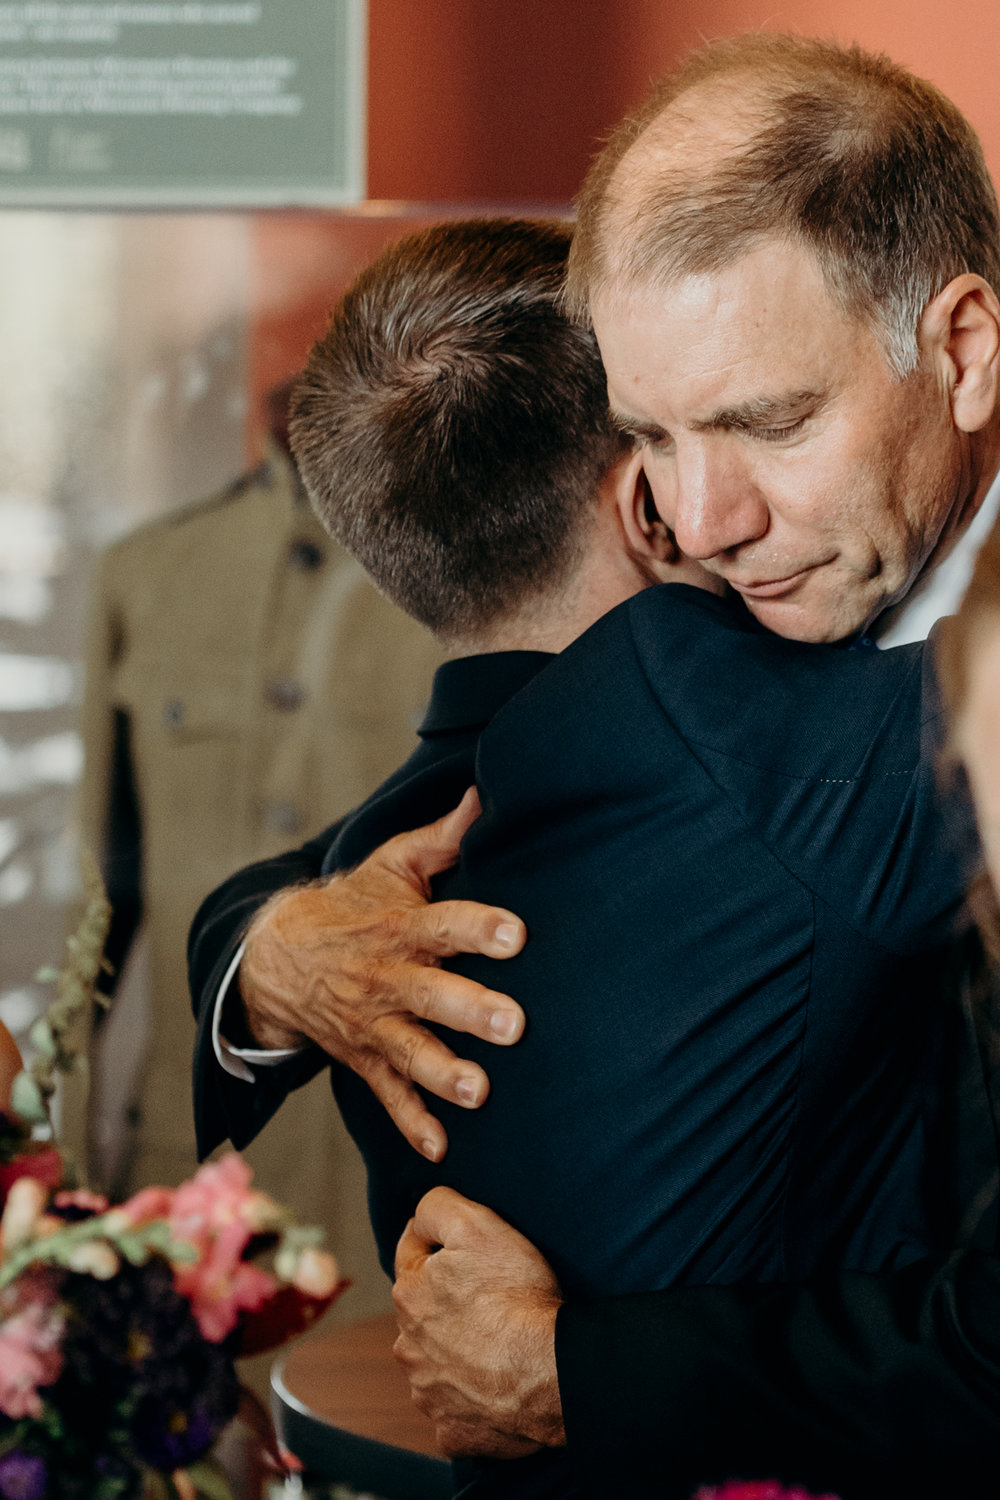 Father of bride hugs his new son-in-law.